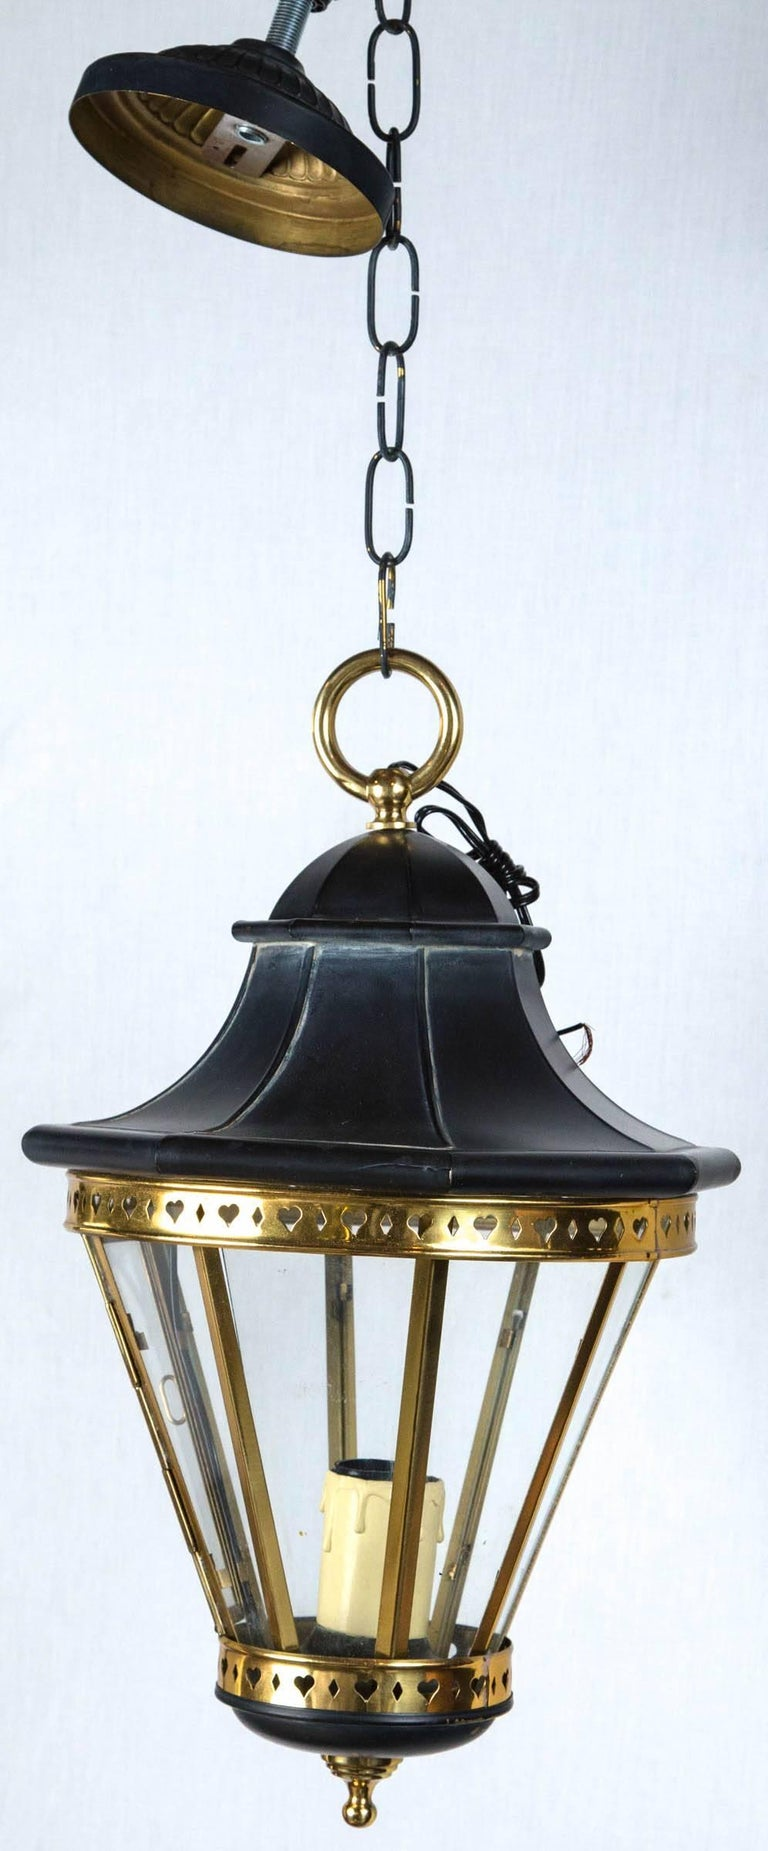 1970s Small Black and Brass Lantern In Excellent Condition For Sale In Stamford, CT